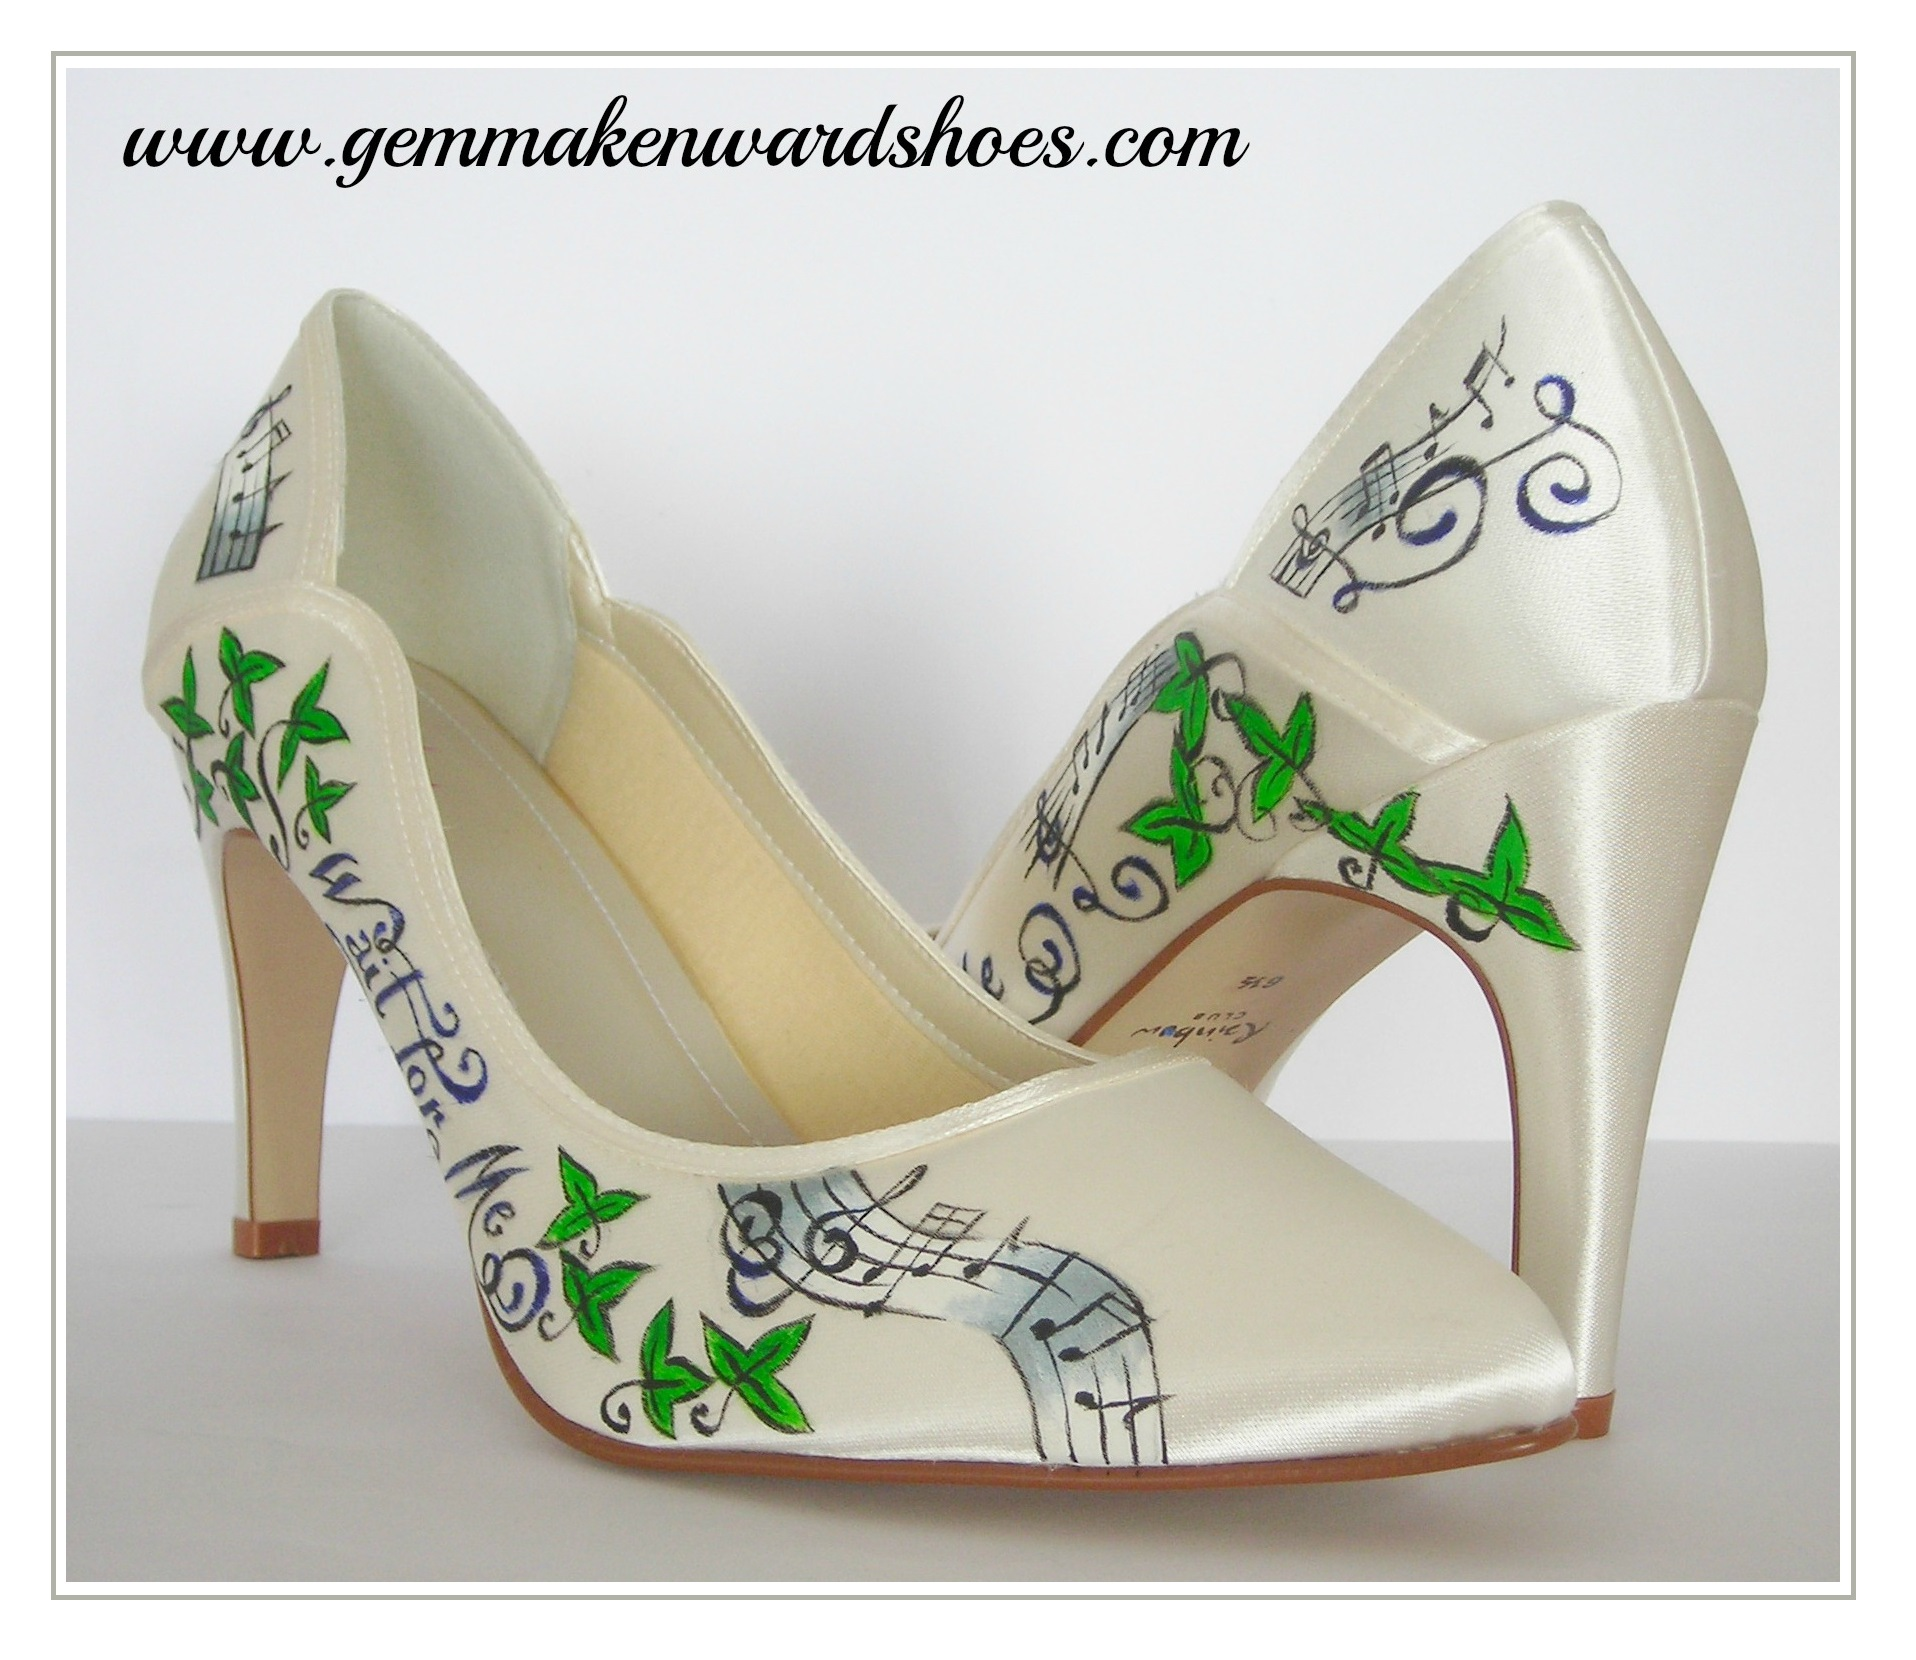 Customised wedding shoes with Kings of Leon Lyrics, Ivy and Music notes